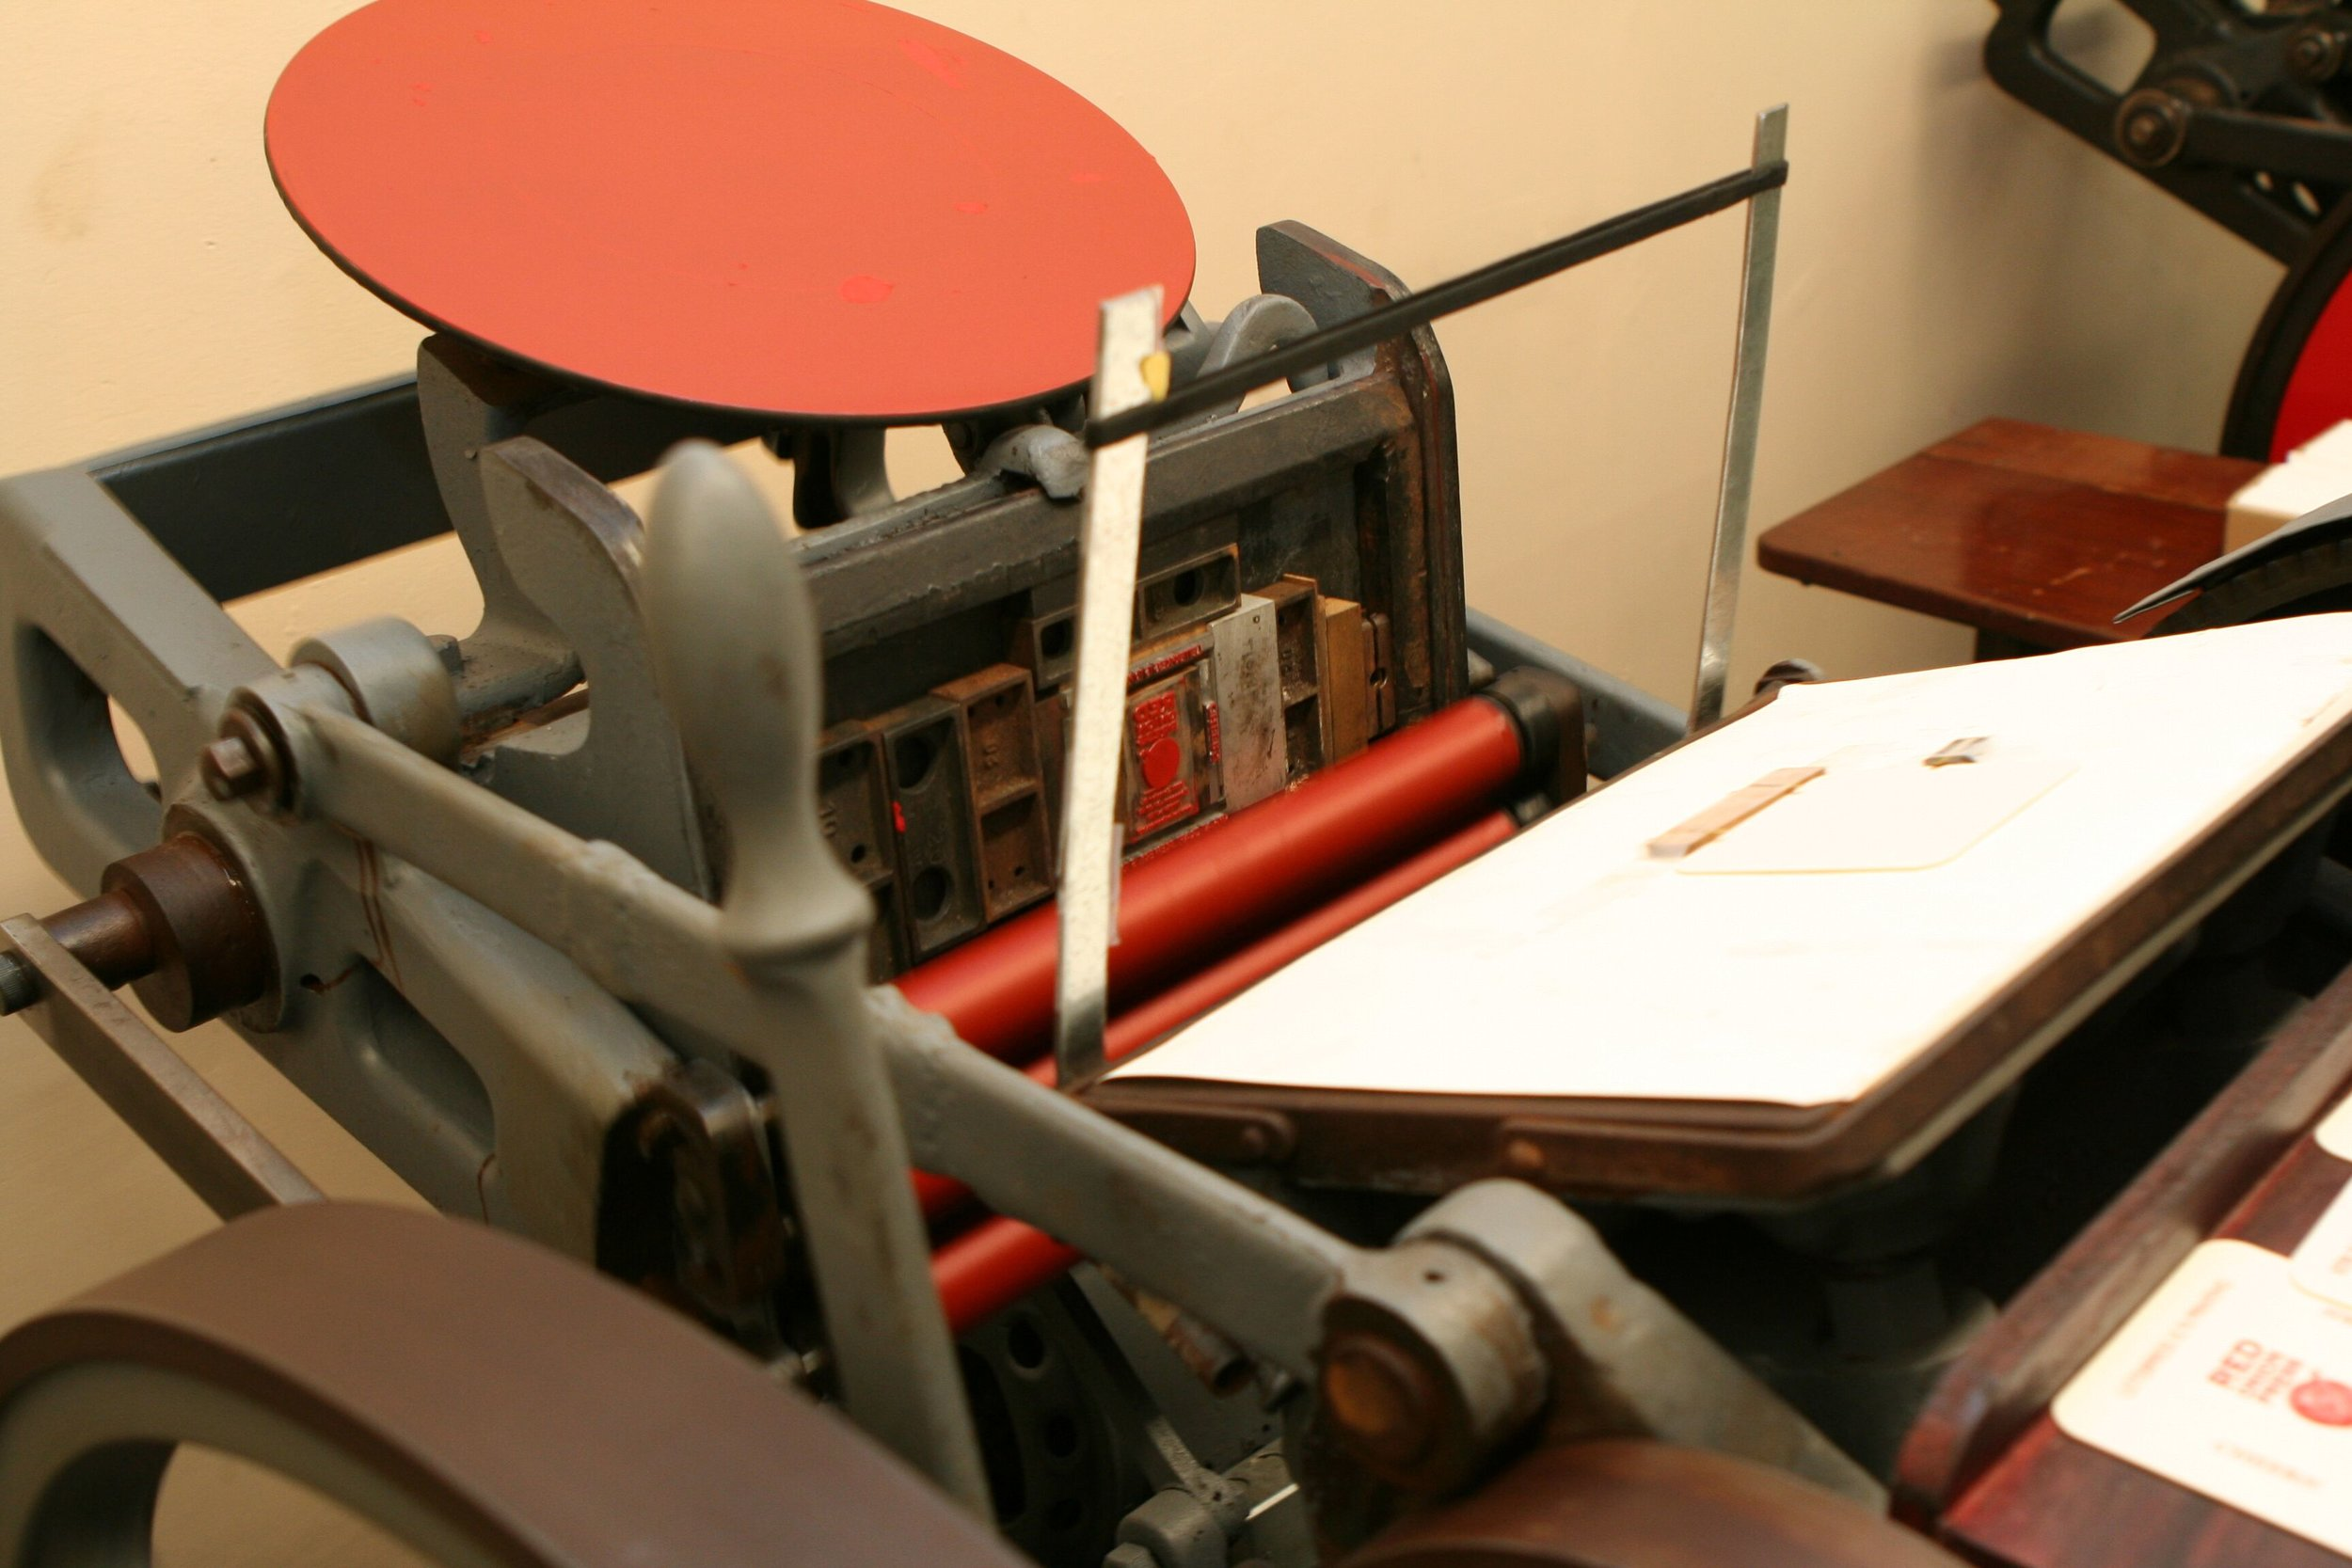 And then transfers the ink to the type and logo